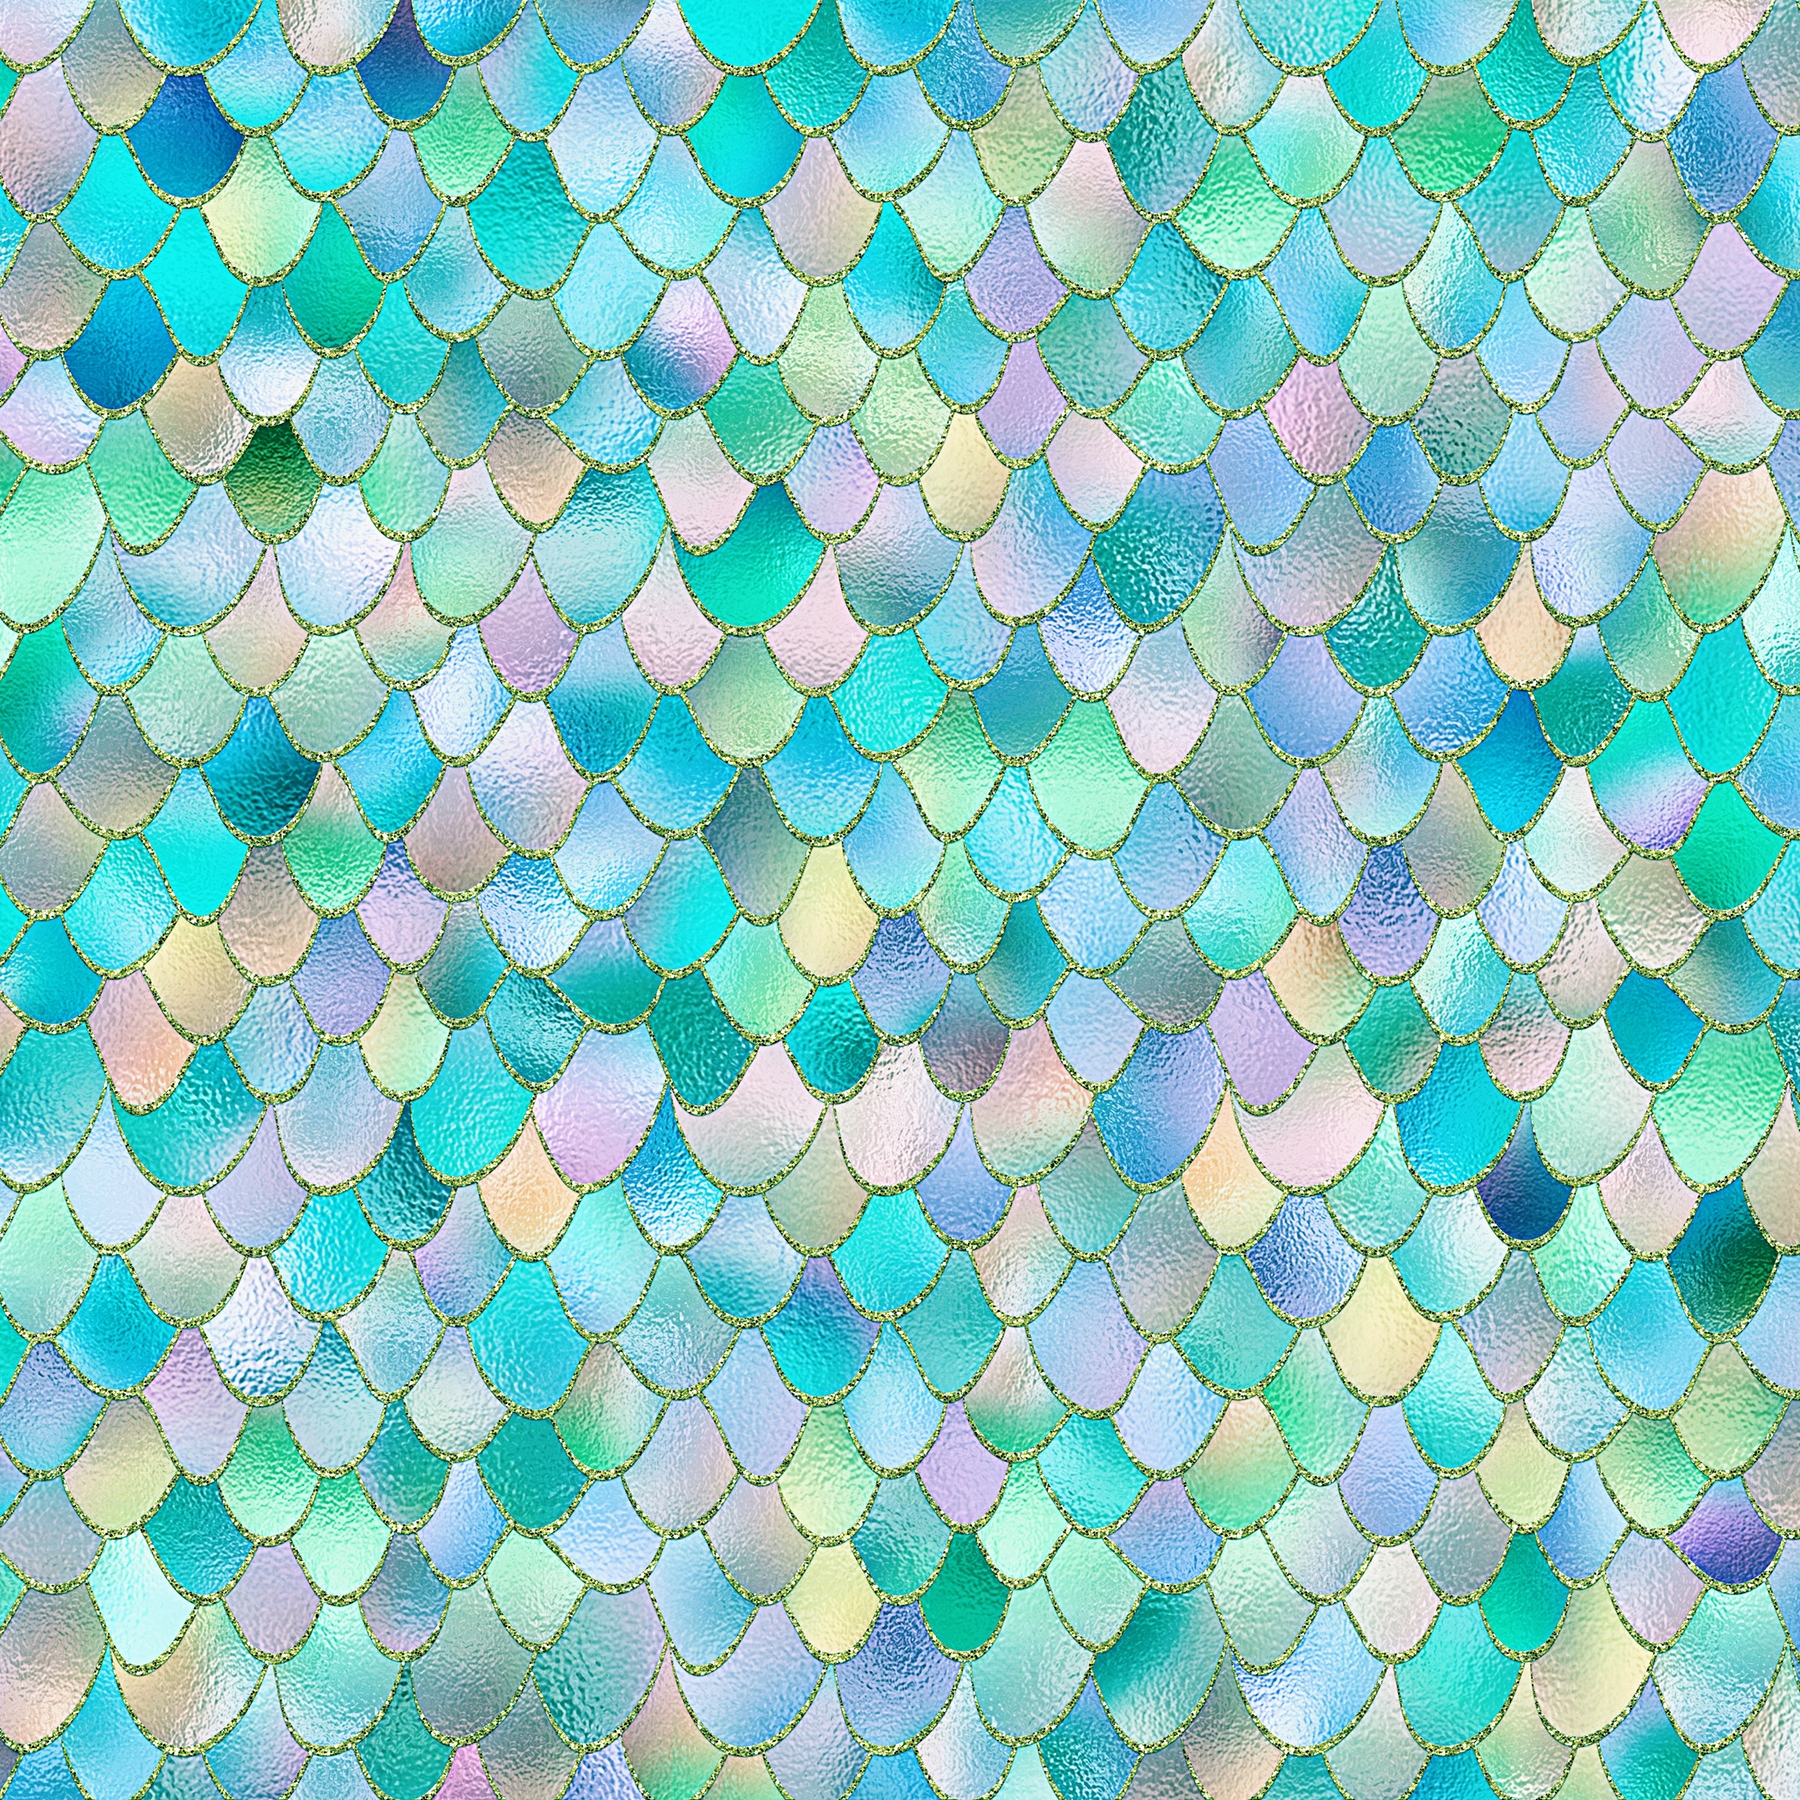 Buy Teal Metal Mermaid Scales Wall Mural Free Us